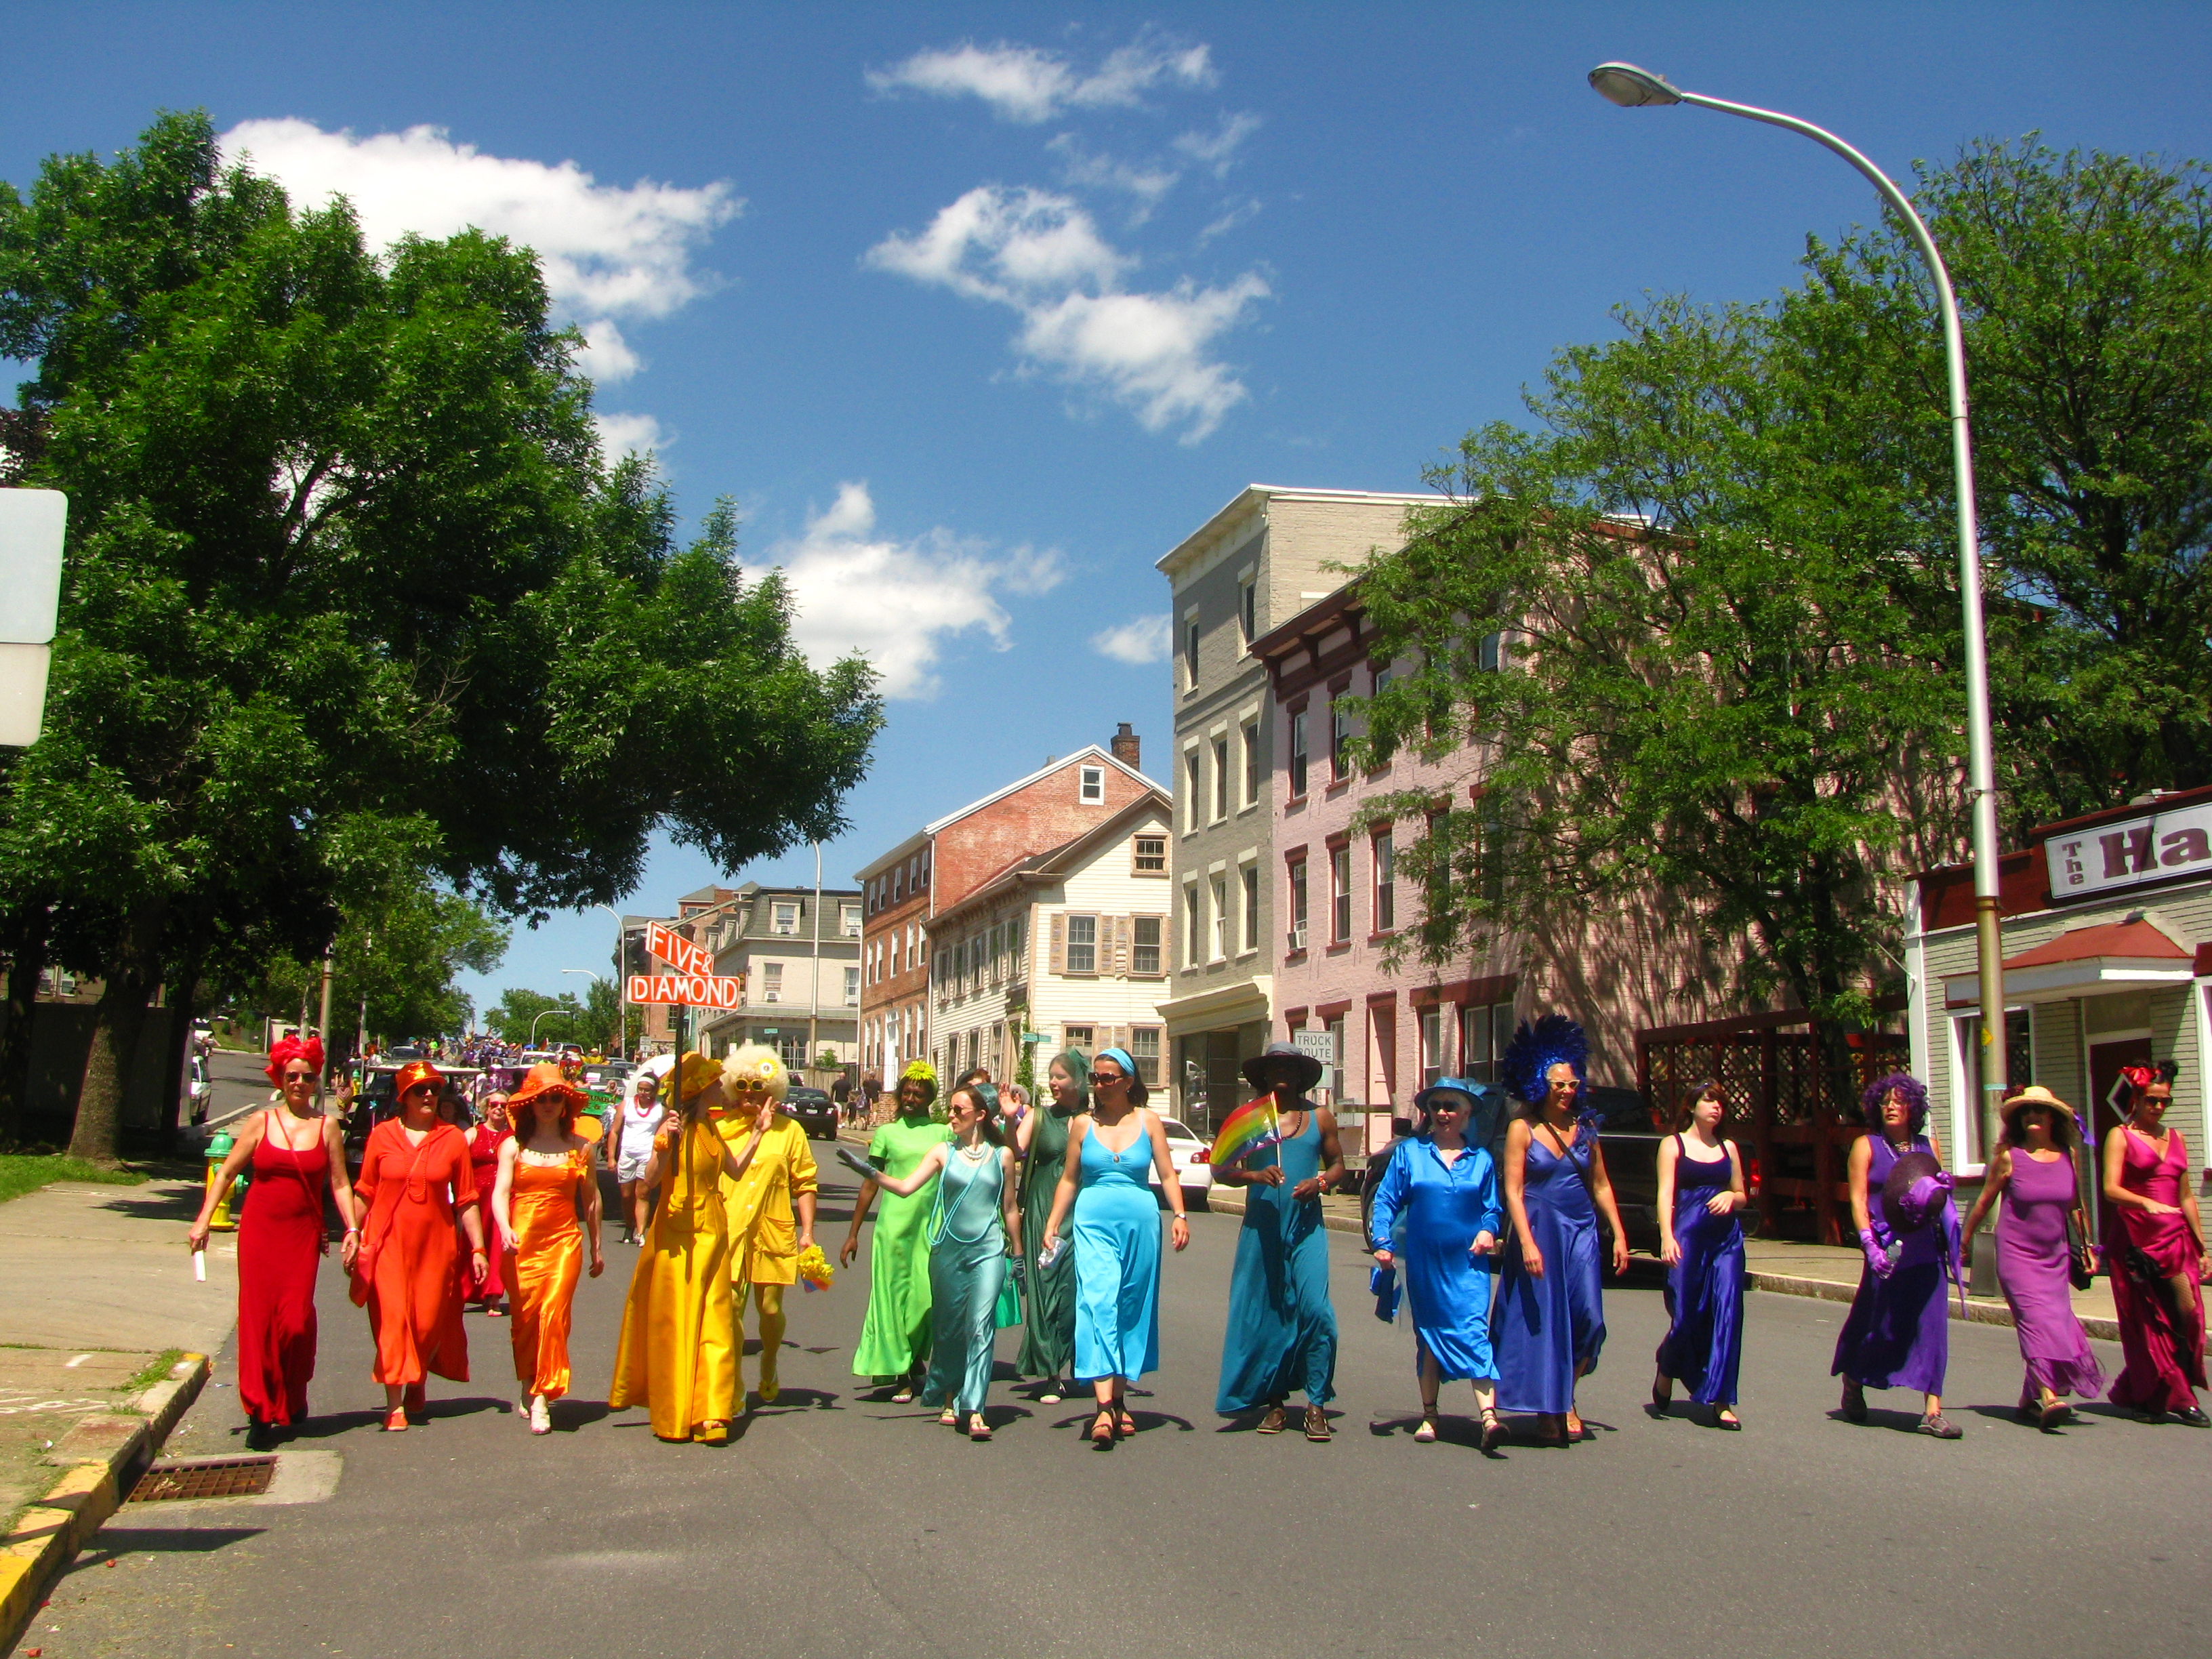 Celebrating Pride in Hudson, NY - Sweet and Savoring